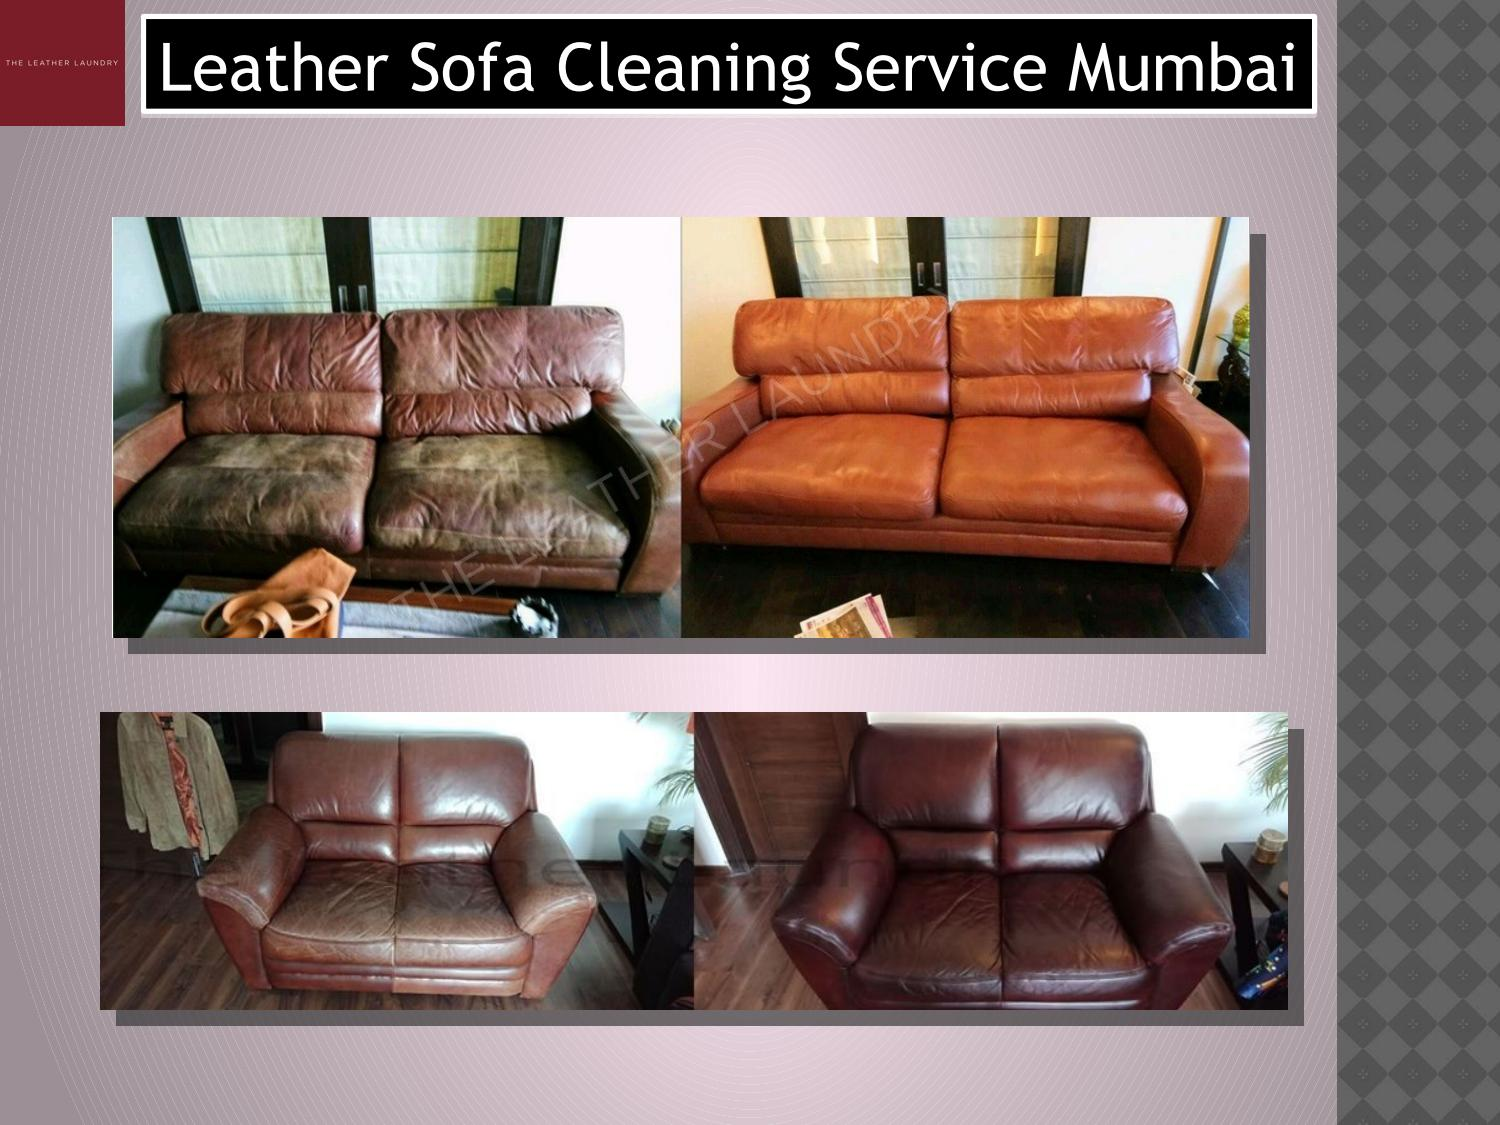 Leather Sofa Cleaning Service Mumbai by ...